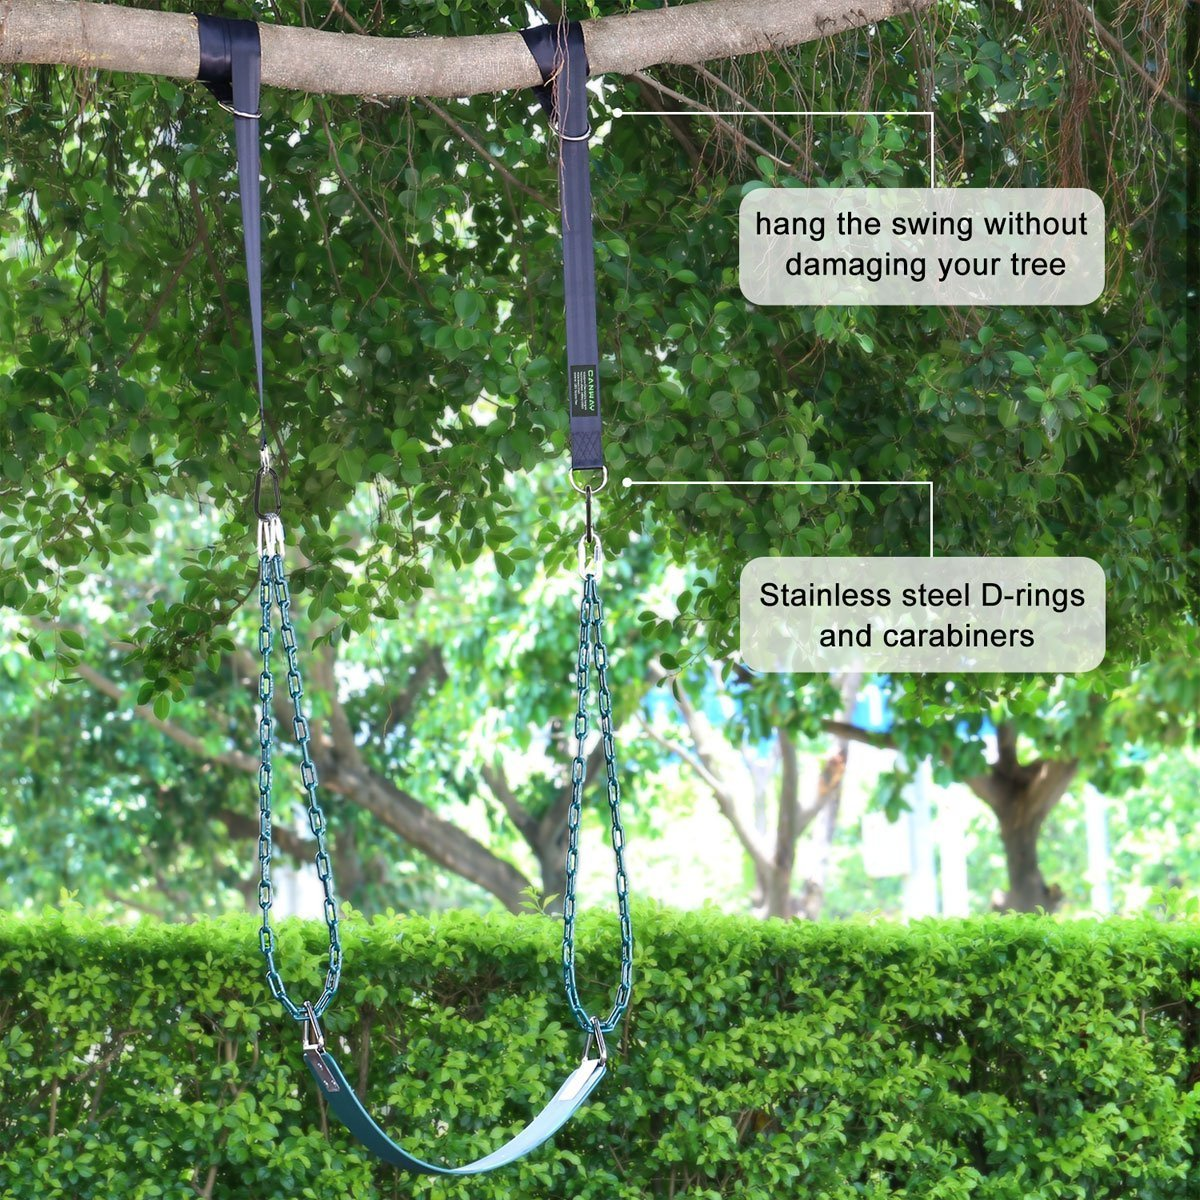 - Camping Hammock Accessories 5ft CANWAY Set of 2 Tree Swing Straps Hanging Kit Holds Max 2200 LB with Two Heavy Duty Carabiners Stainless Steel